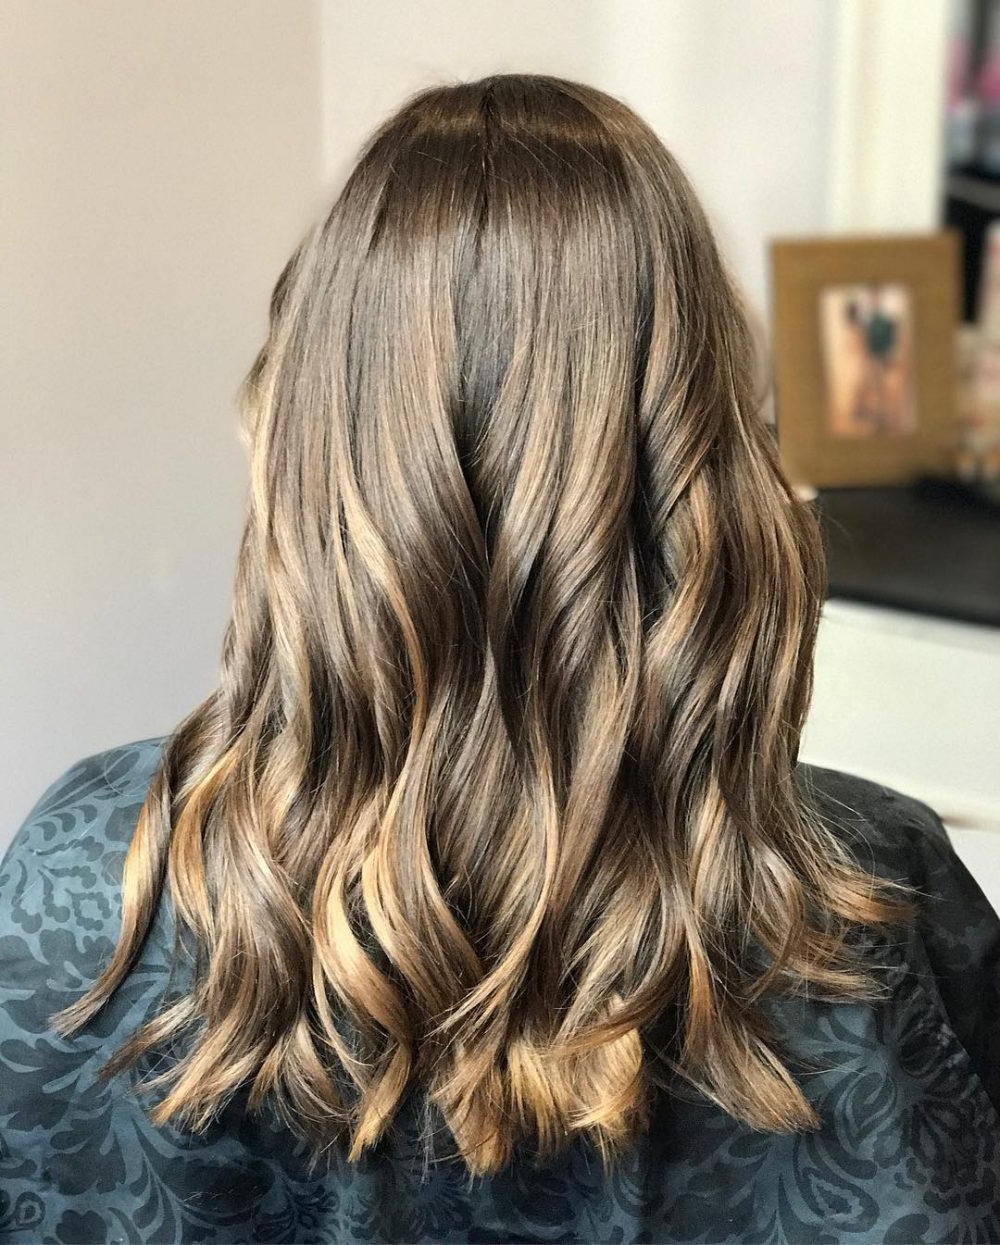 34 Sweetest Caramel Highlights On Light To Dark Brown Hair (2018) Intended For Curly Dark Brown Bob Hairstyles With Partial Balayage (View 17 of 25)